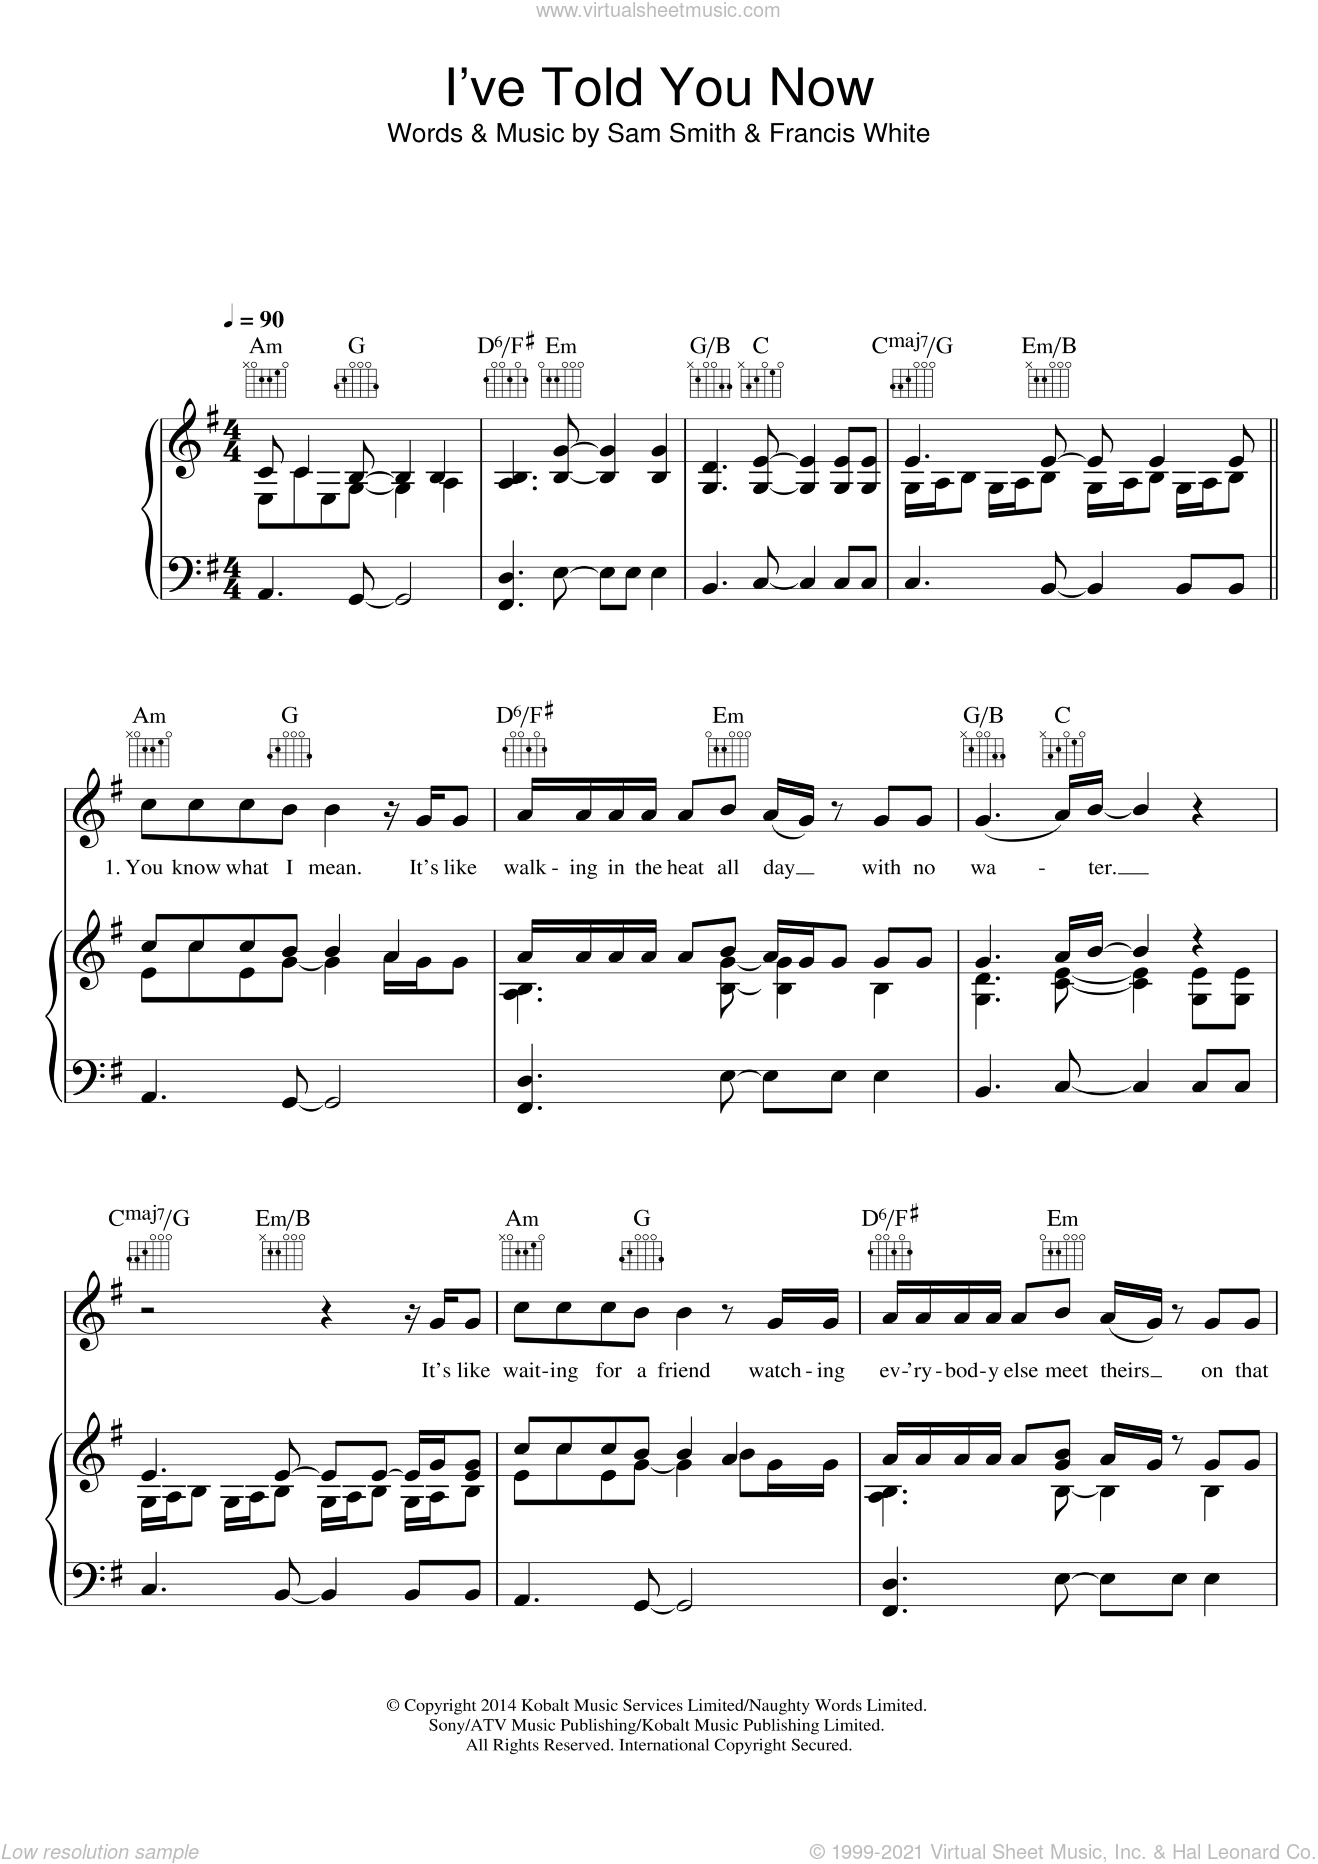 I've Told You Now sheet music for voice, piano or guitar by Sam Smith and Francis White, intermediate skill level